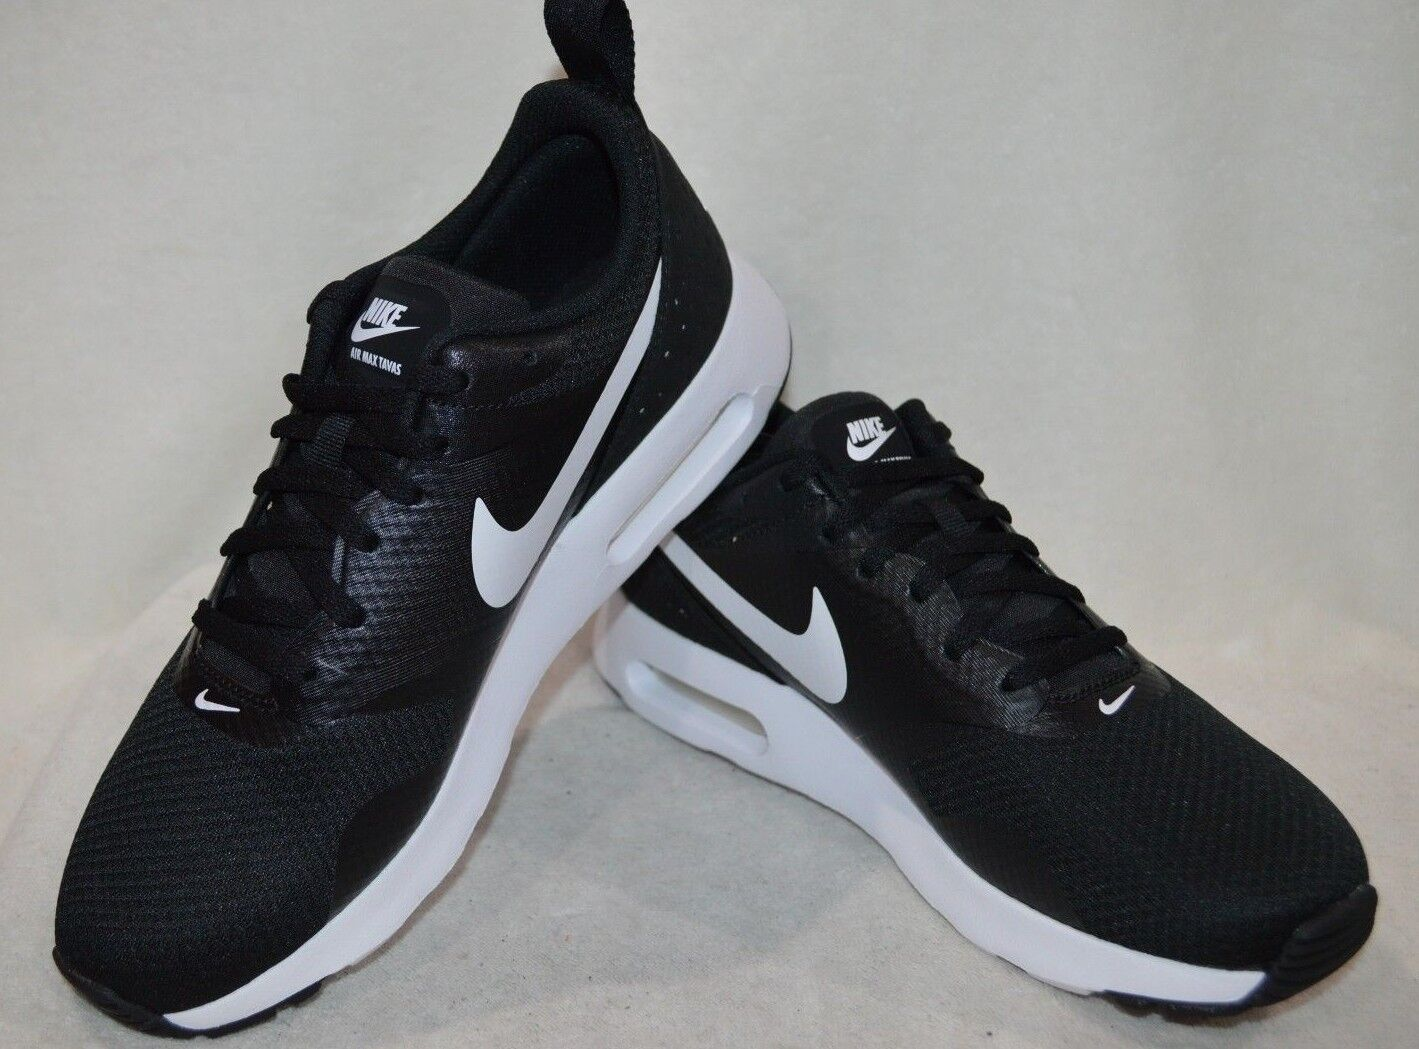 Nike Air Max Tavas Black White Women's Running shoes - Assorted Sizes NWB